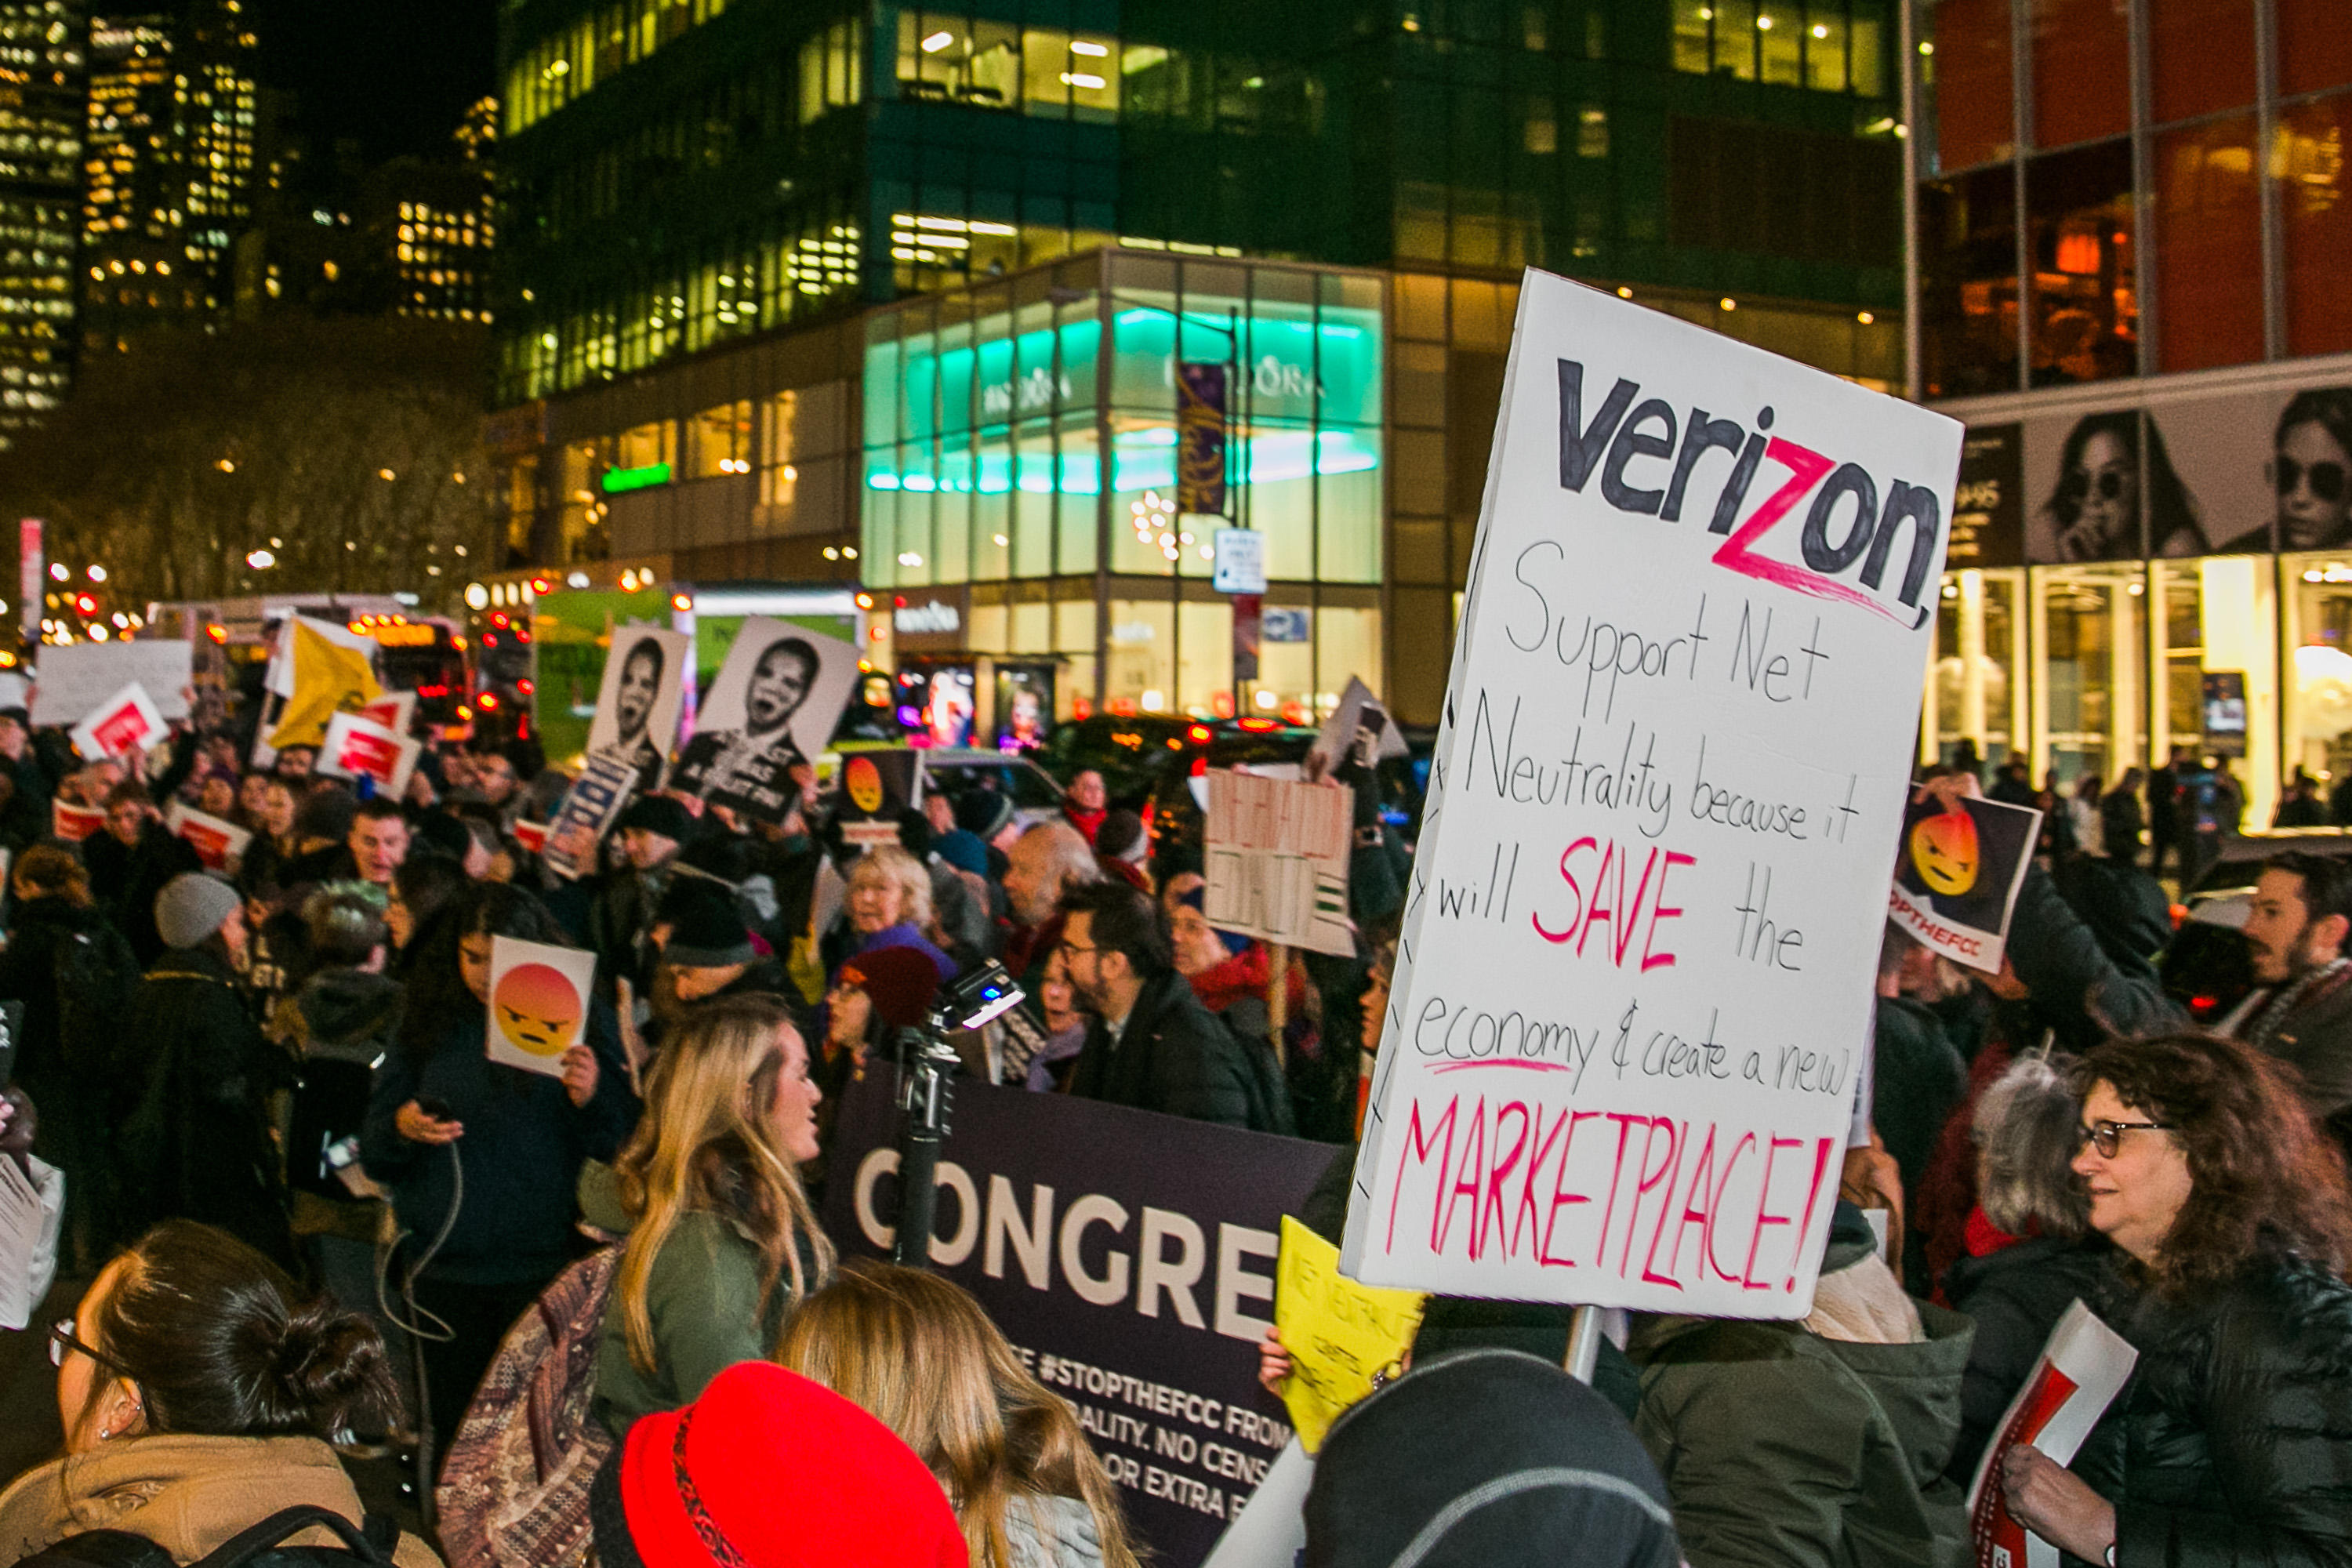 Net neutrality protest at a Verizon store in New York City.